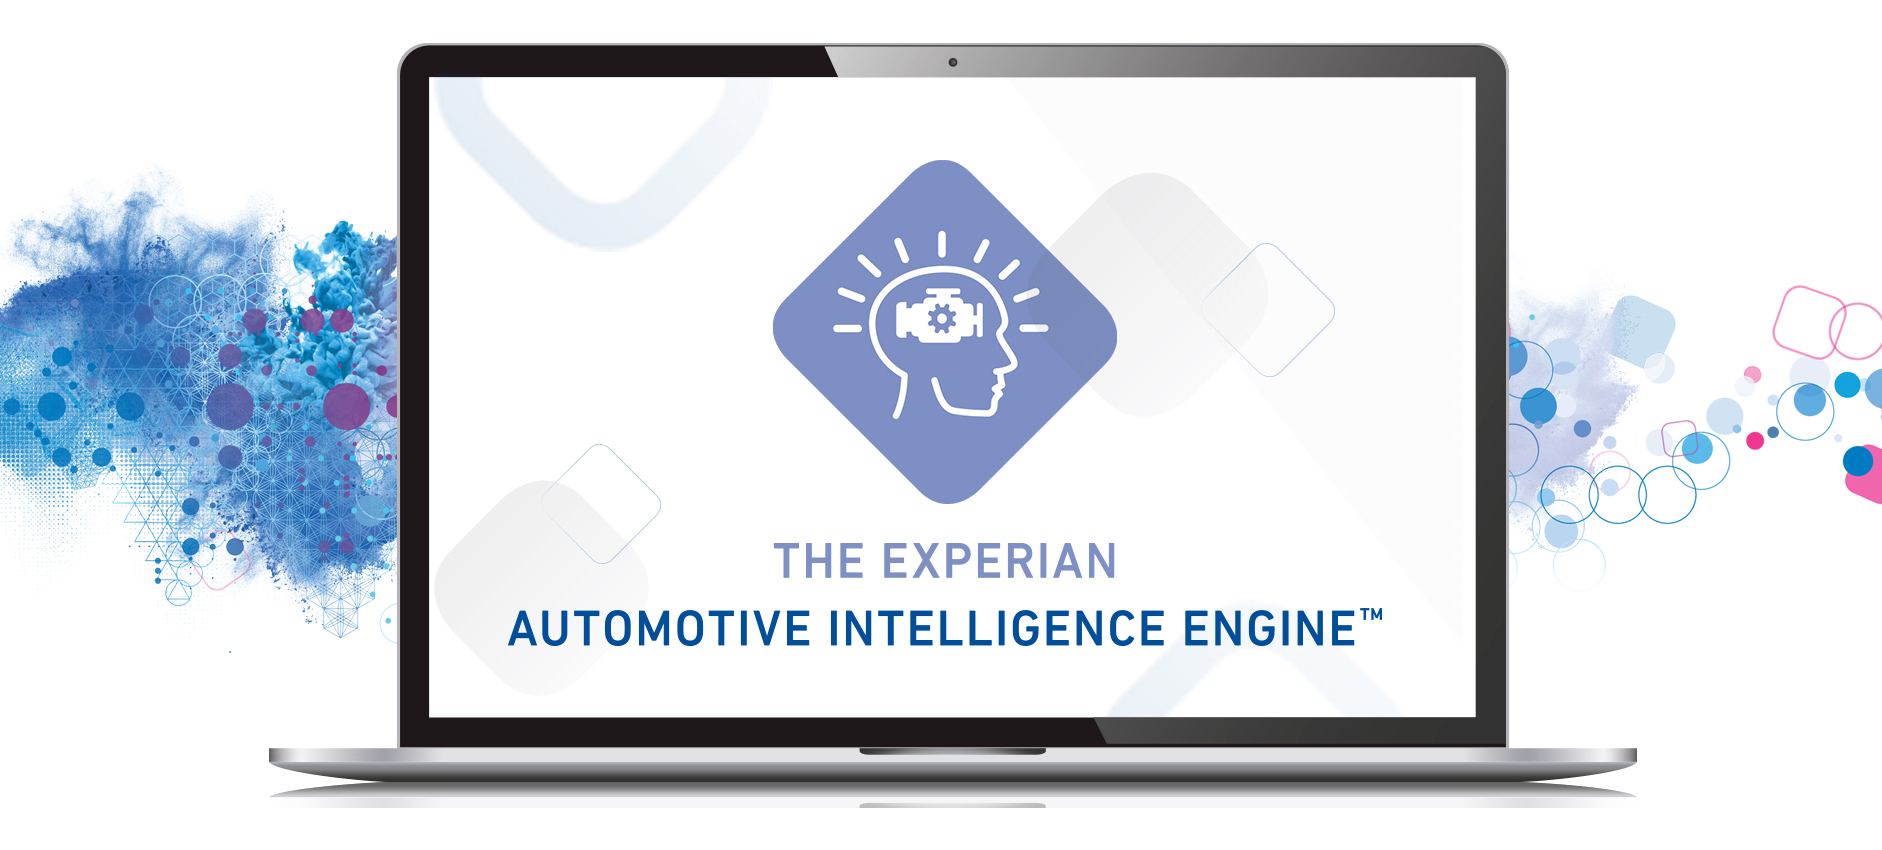 Computer with Automotive intelligence engine logo on screen